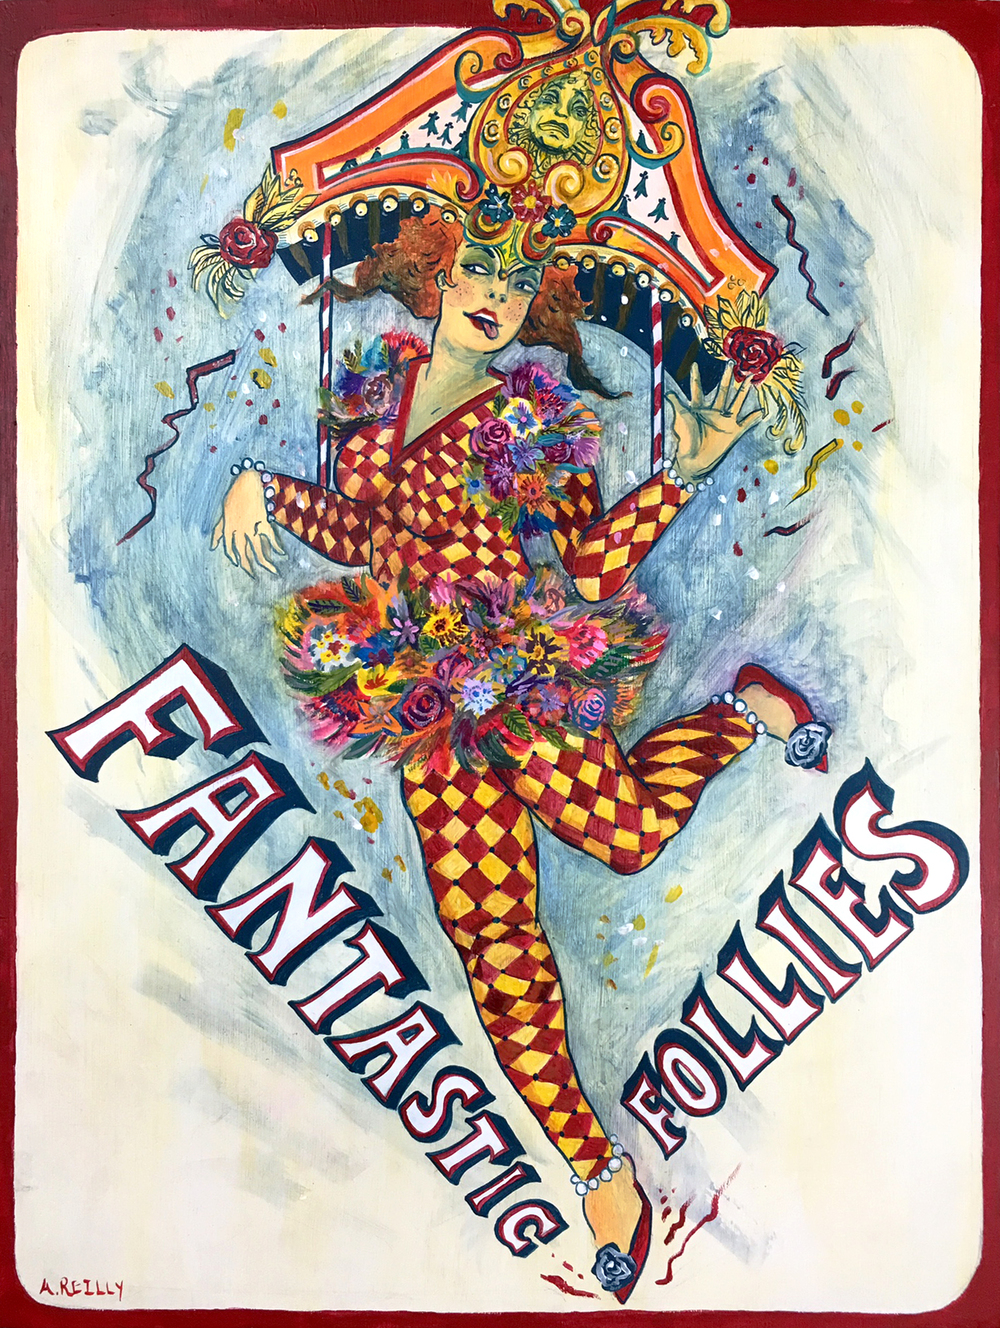 Fantastic Follies.  (Costume Design). Ink and acrylic on wood. 2015